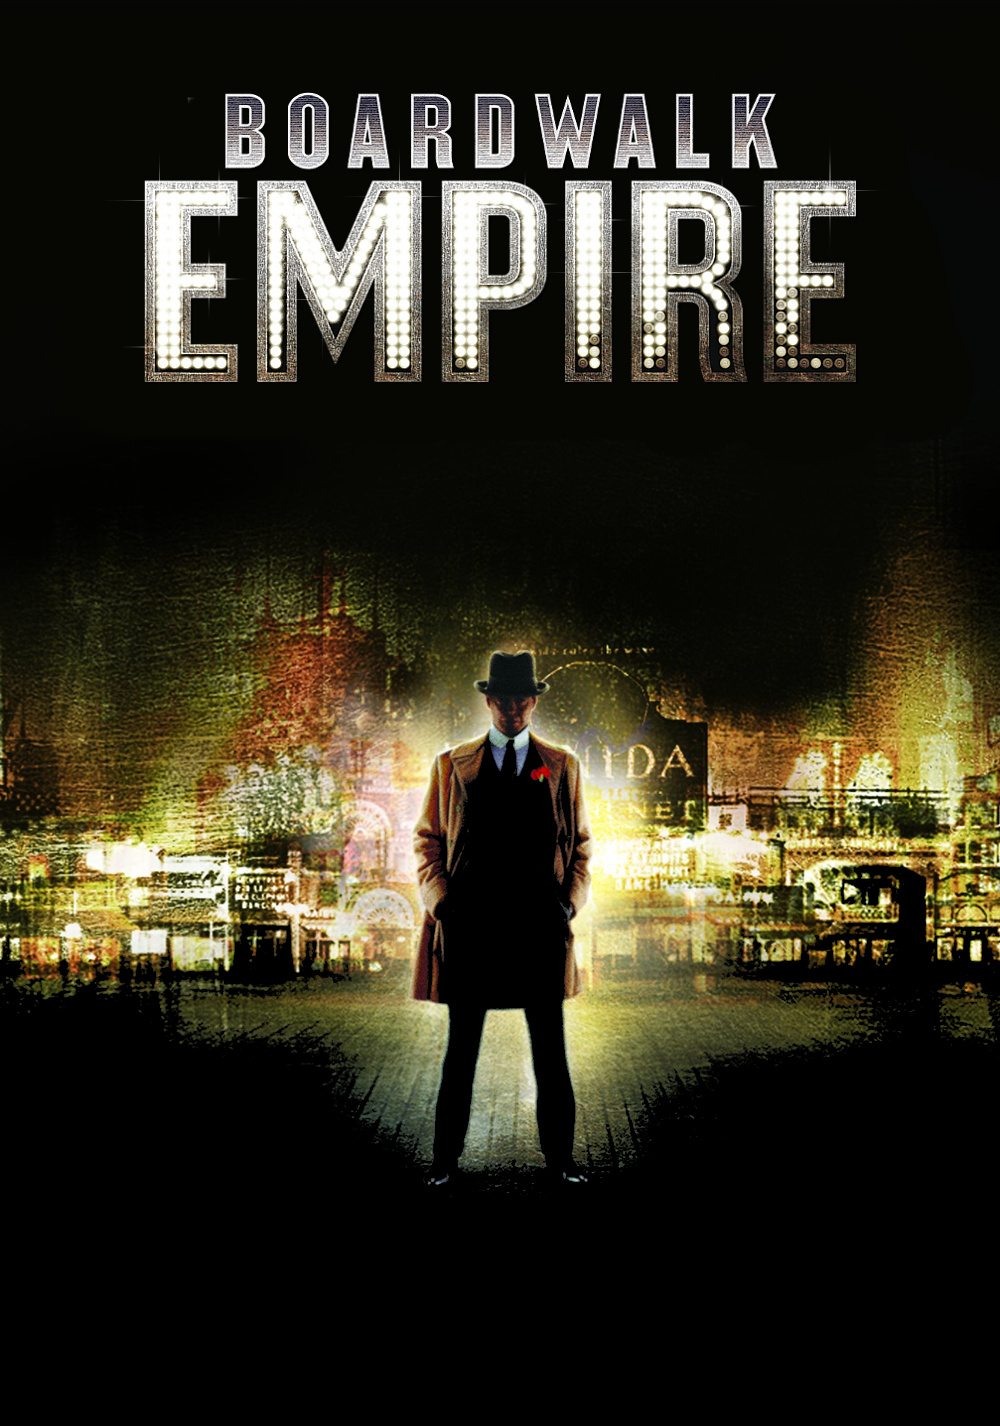 Boardwalk Empire (2010 series)